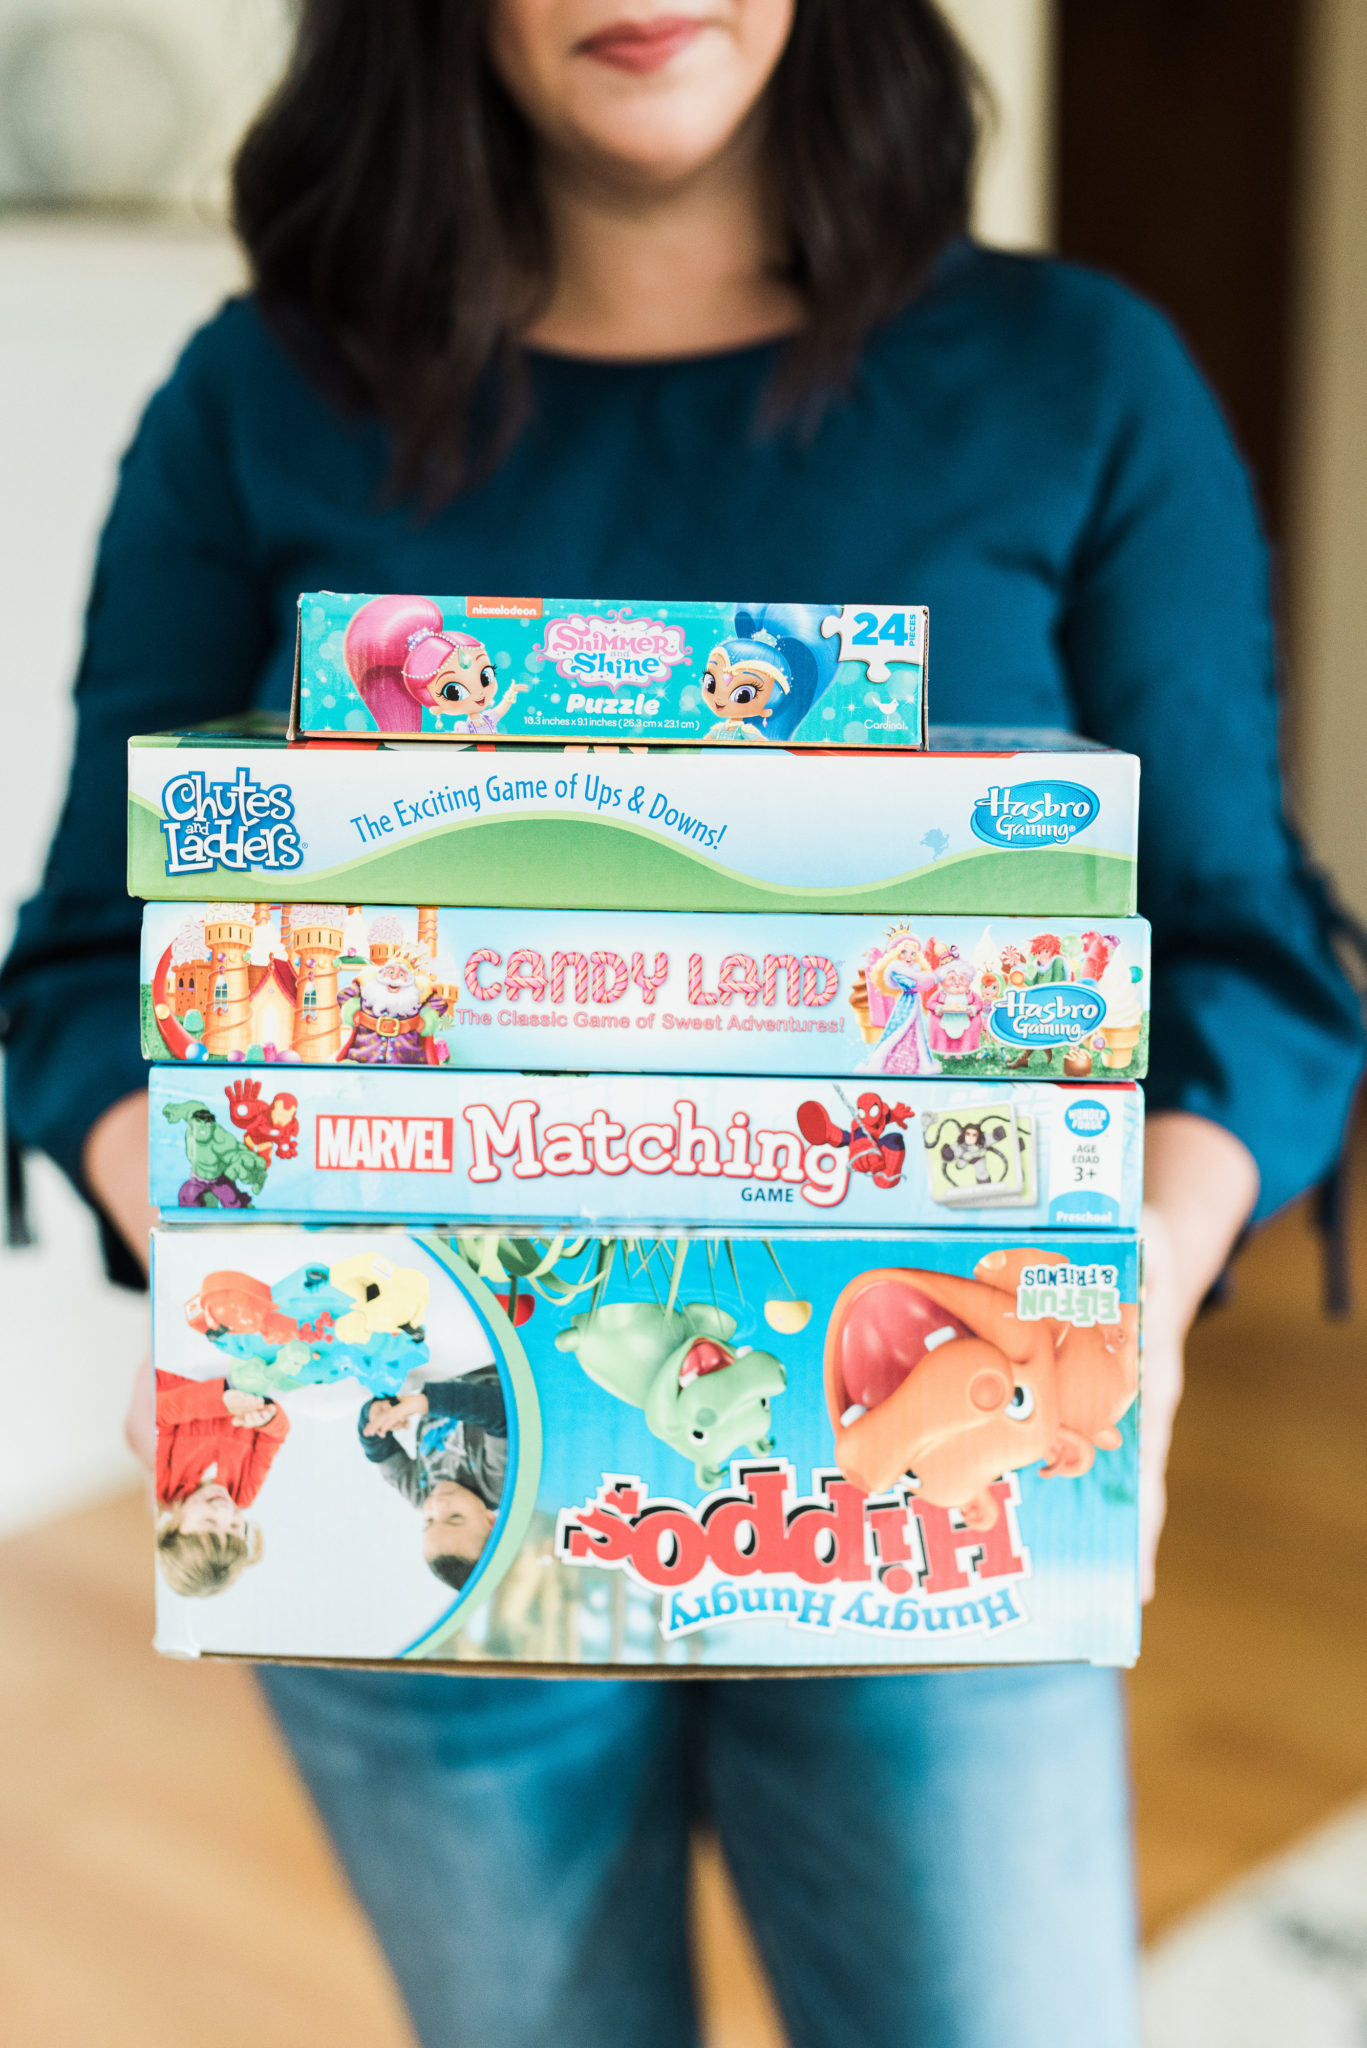 CLASSIC FAMILY GAMES FOR AGES 3 TO 5 | TAMPA LIFESTYLE AND PARENTING